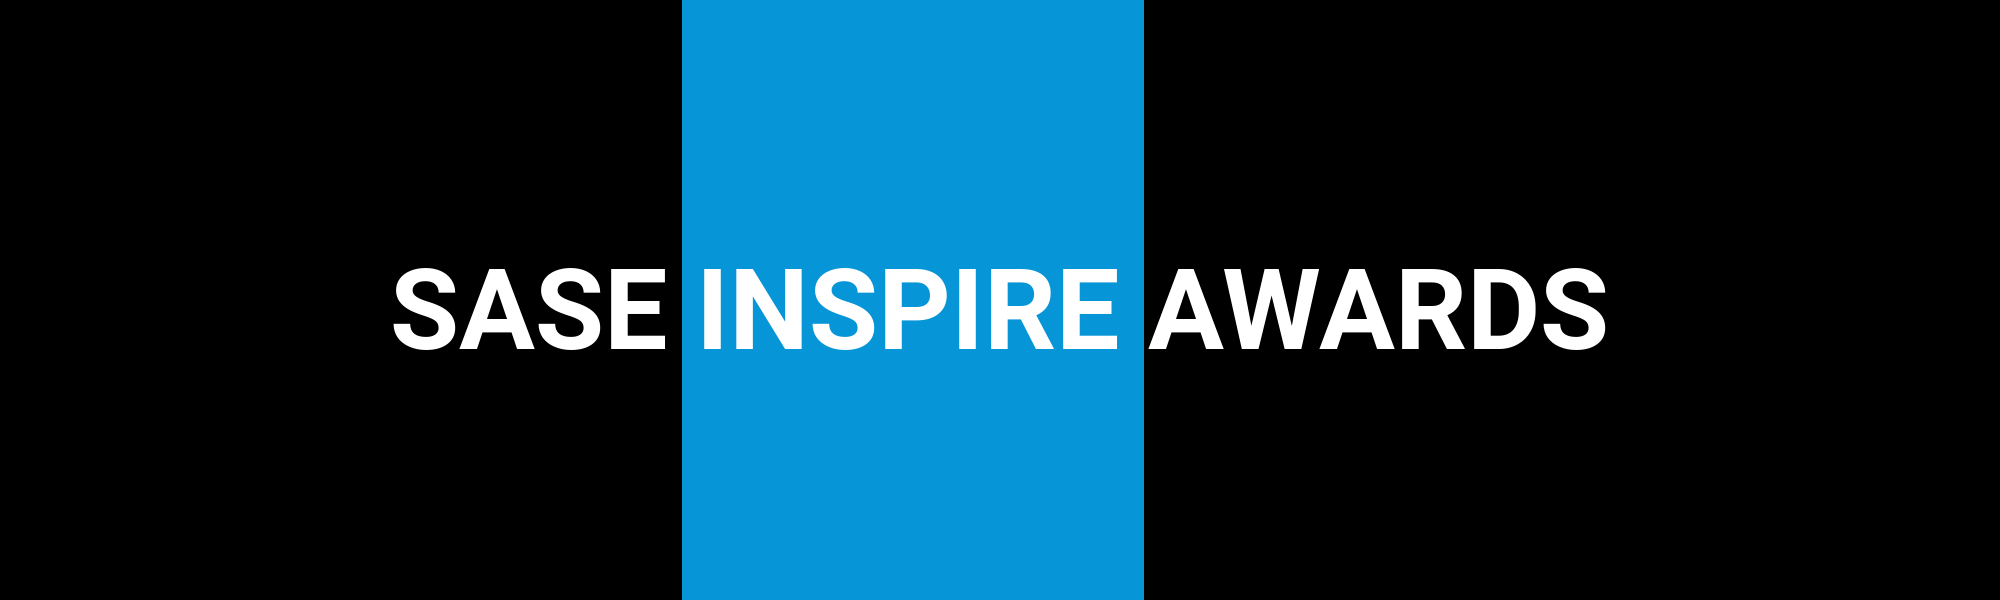 2018 SASE Inspire Awards